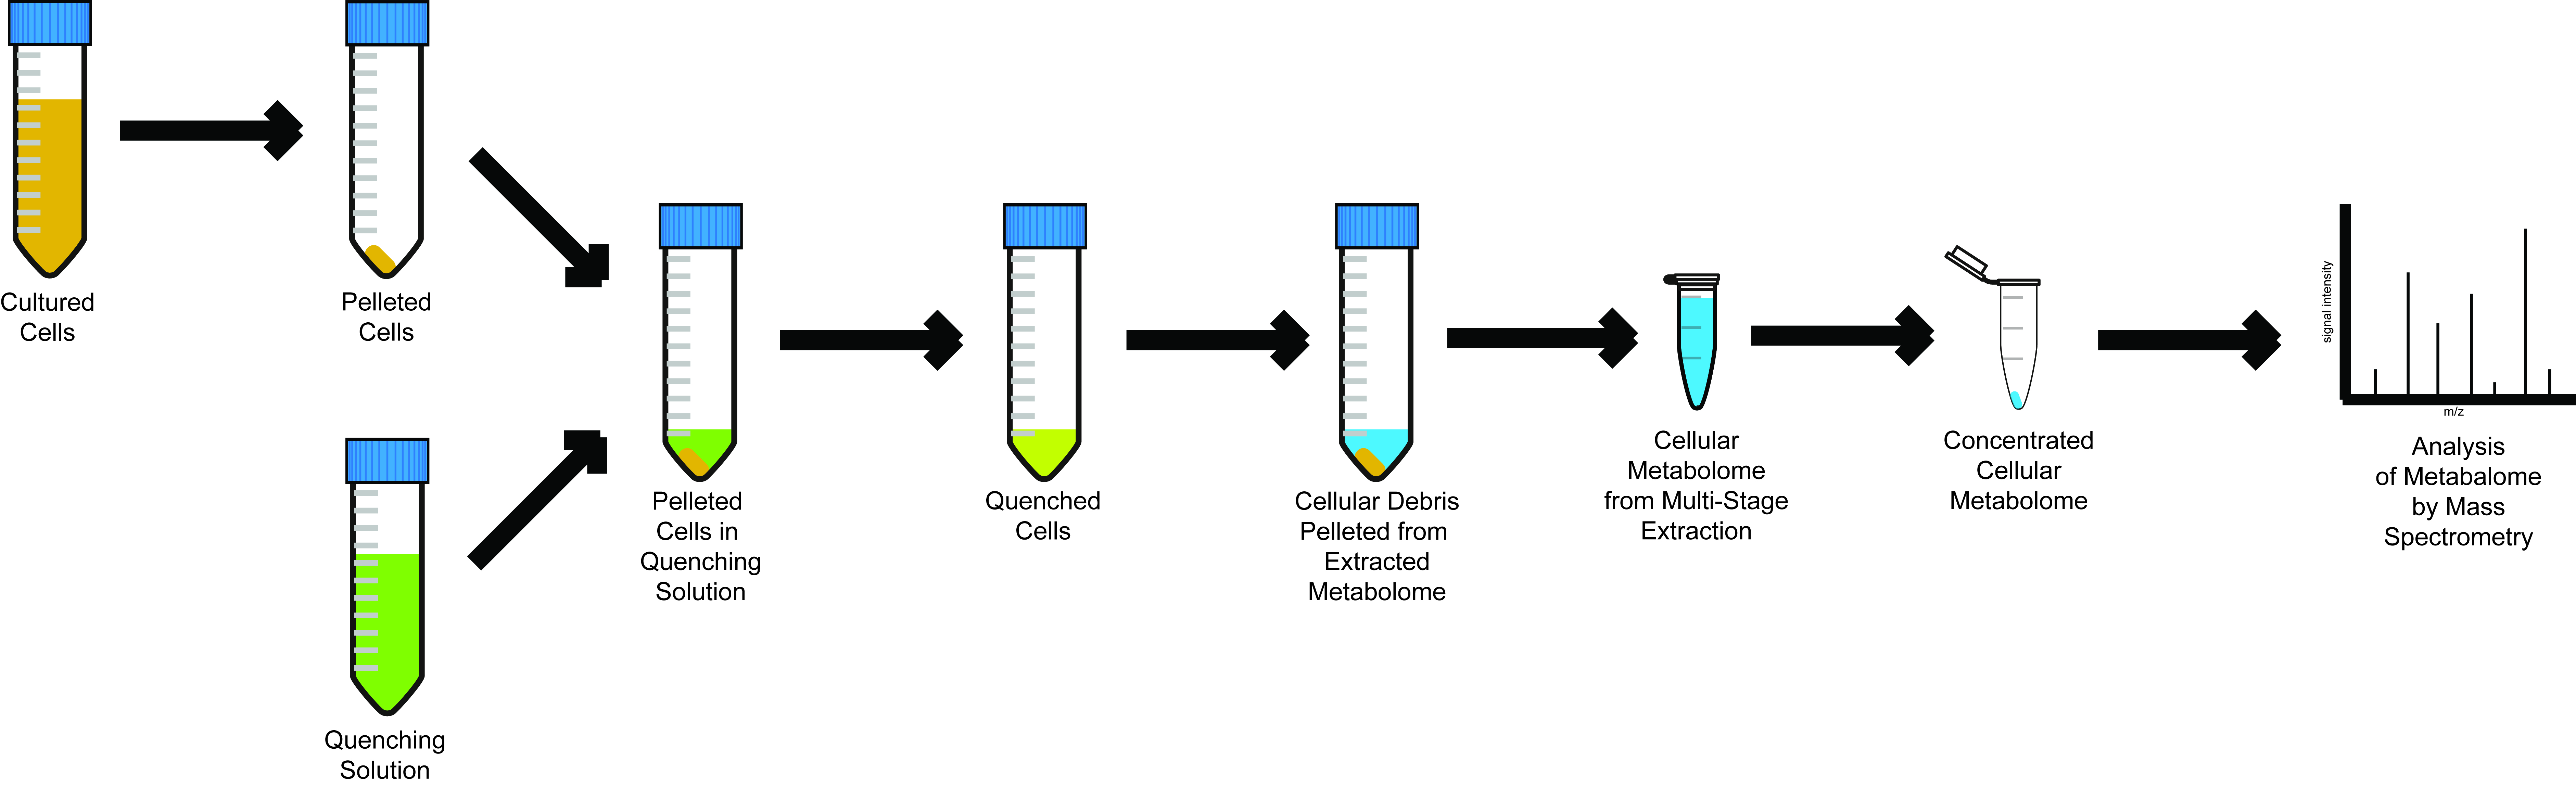 Metabolome Extraction Method.ai